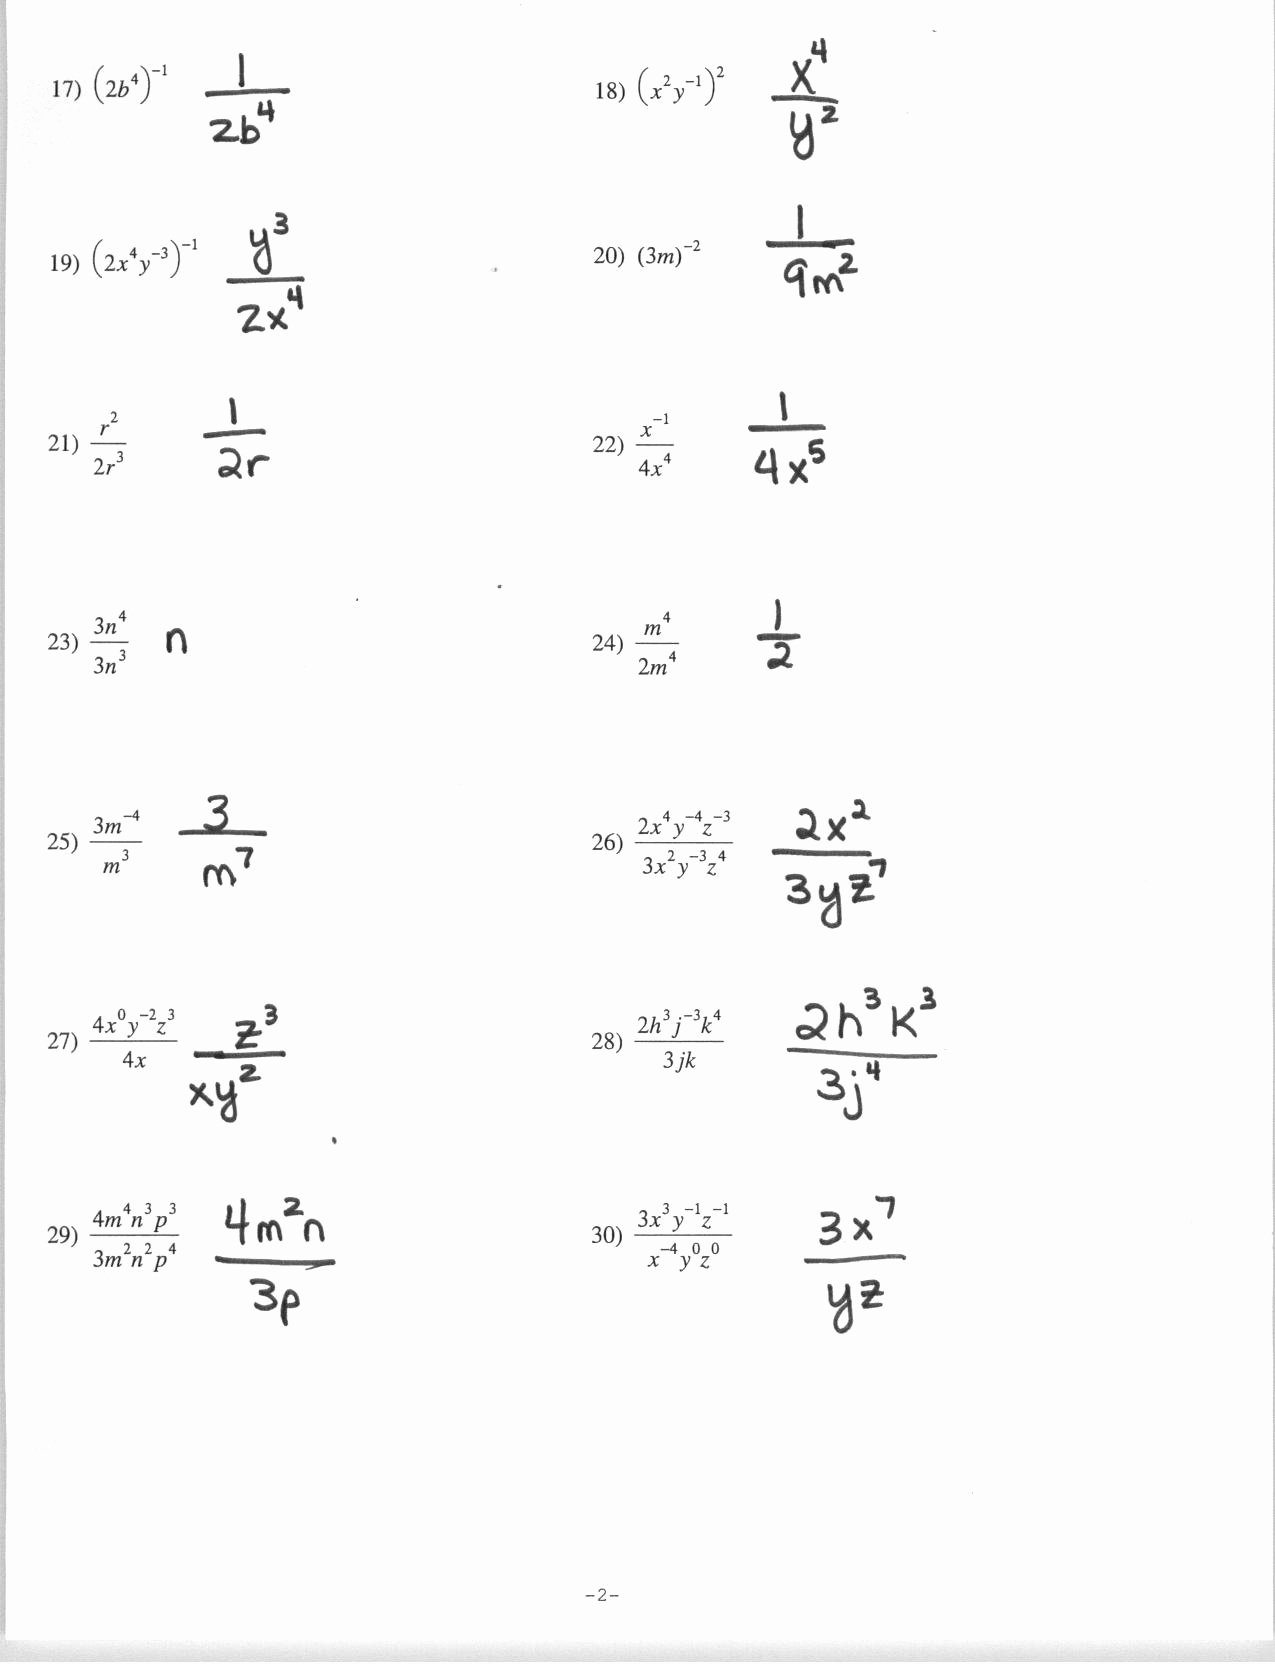 Negative Exponents Worksheet Pdf Awesome Exponents Worksheet Grade 7 Pdf